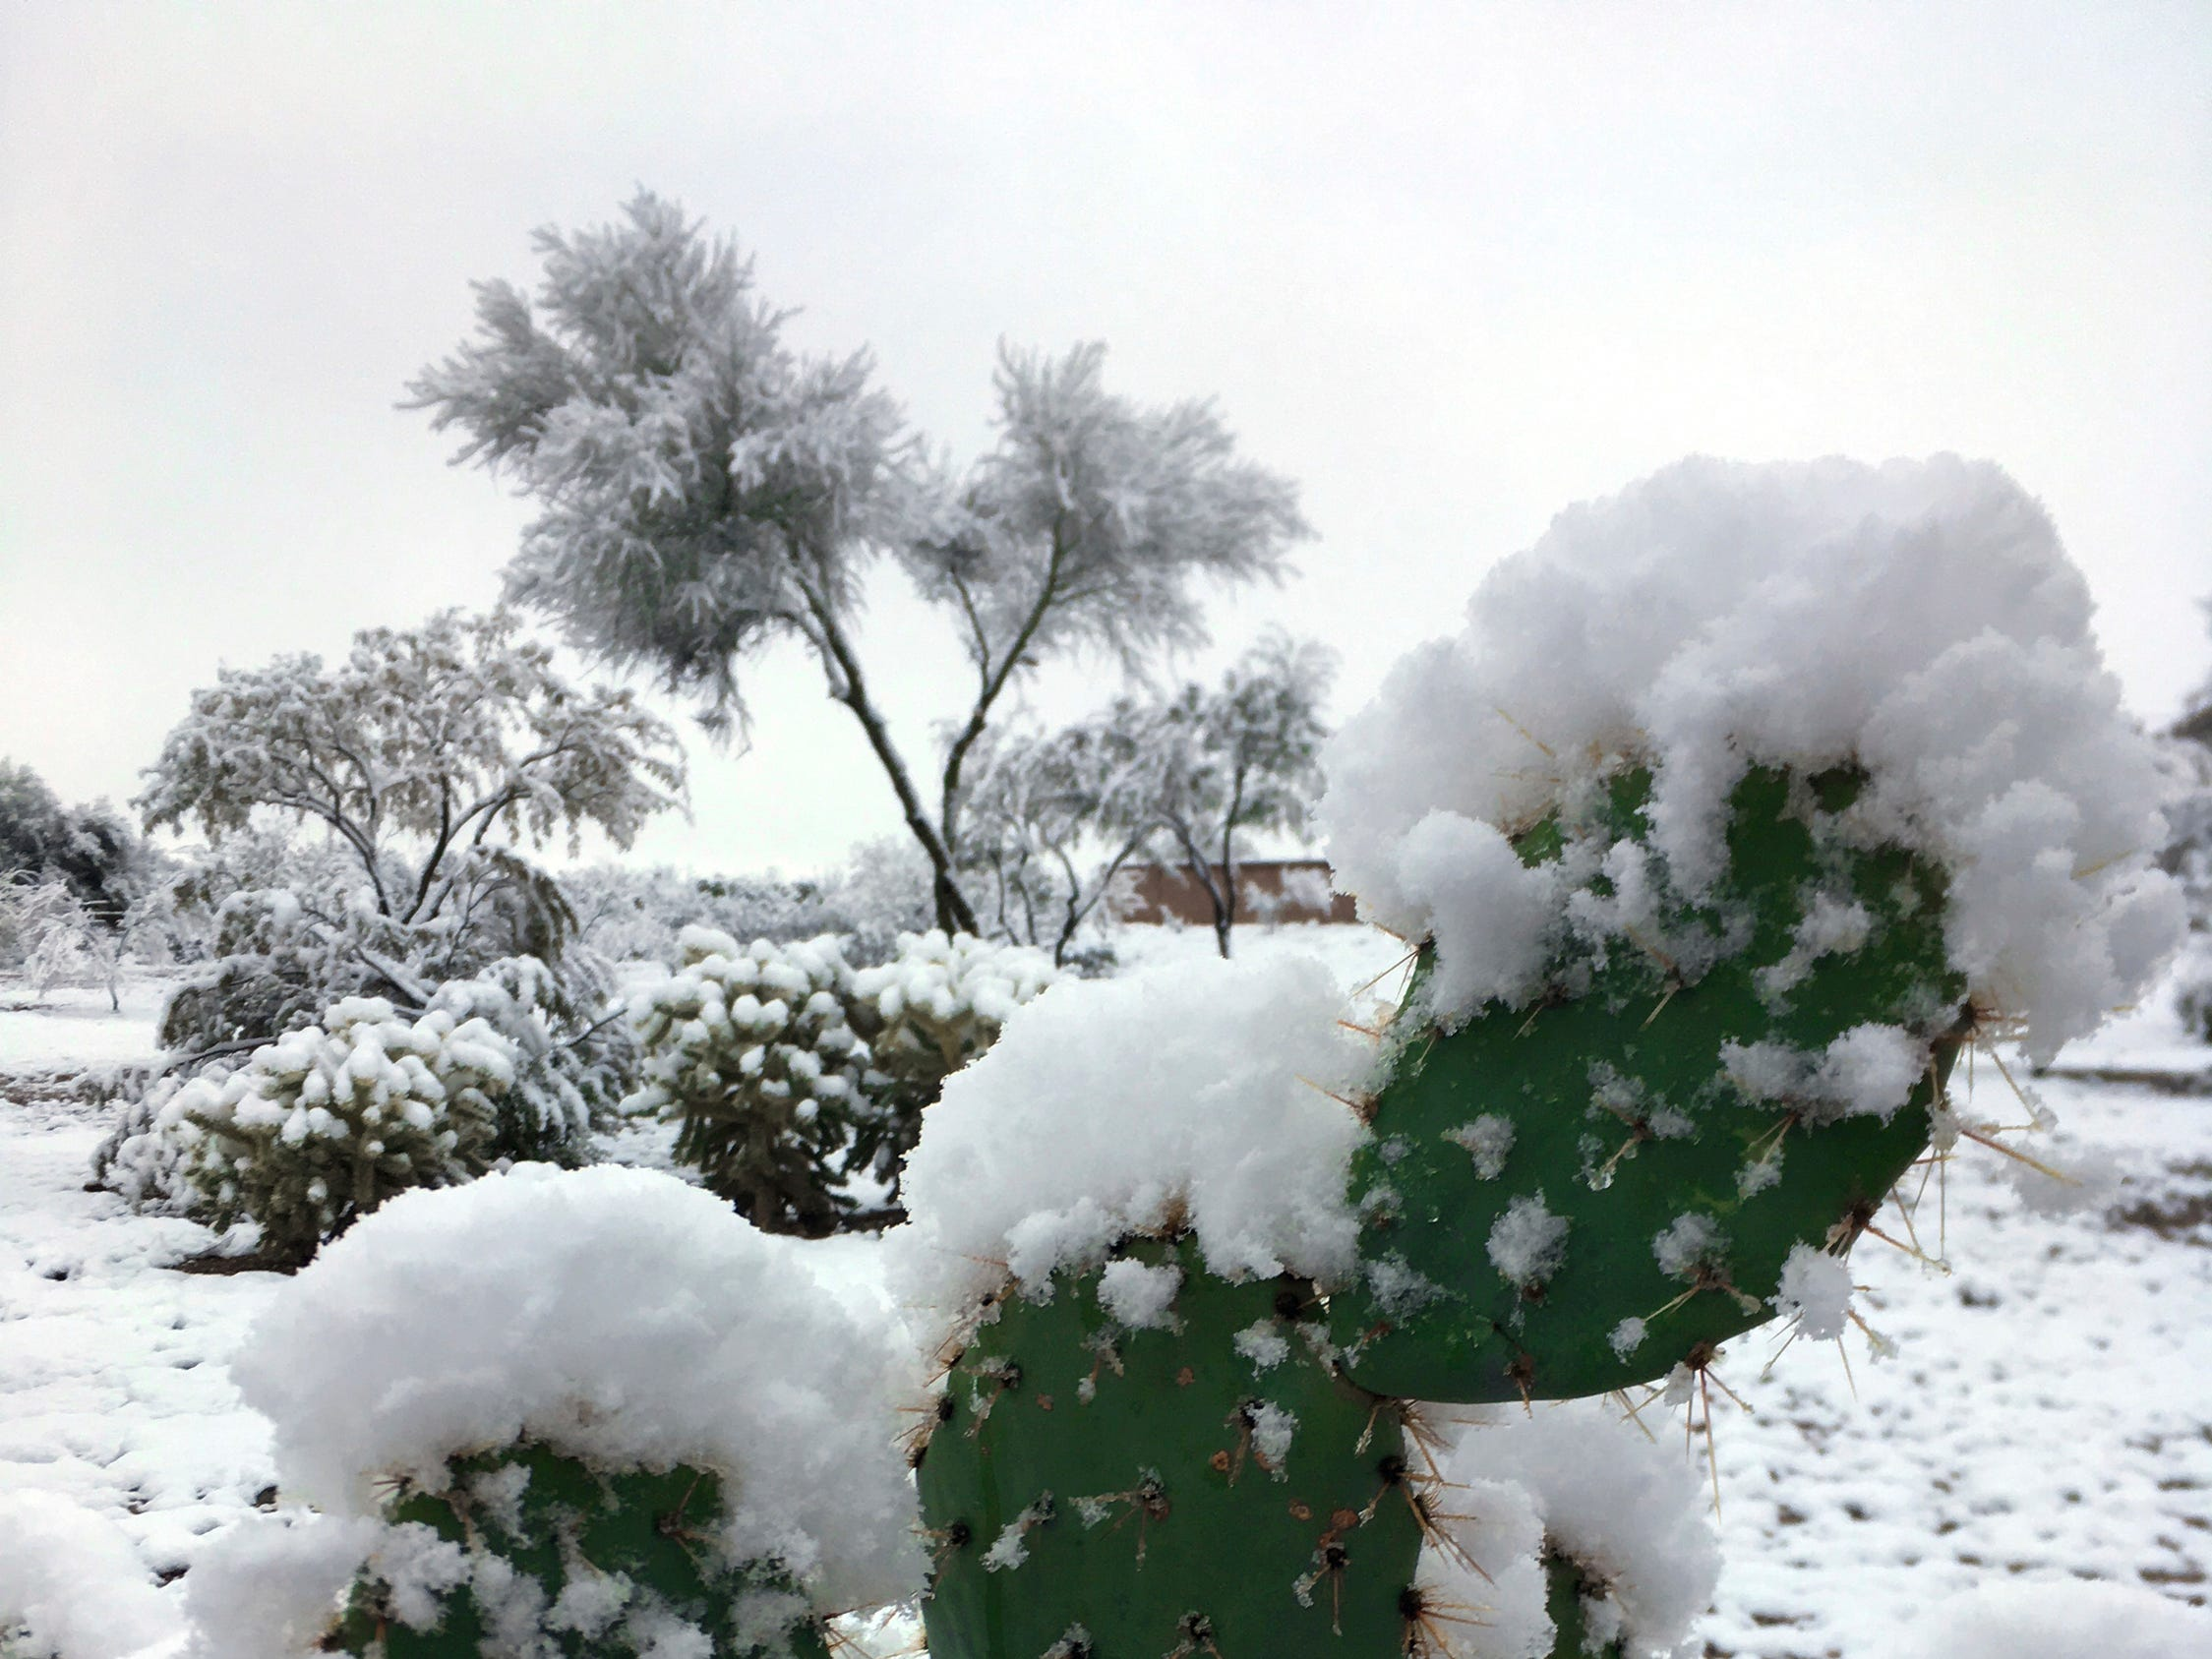 Snow partially covers a cactus outside of Tucson near Vail, Ariz., Jan. 2, 2019.